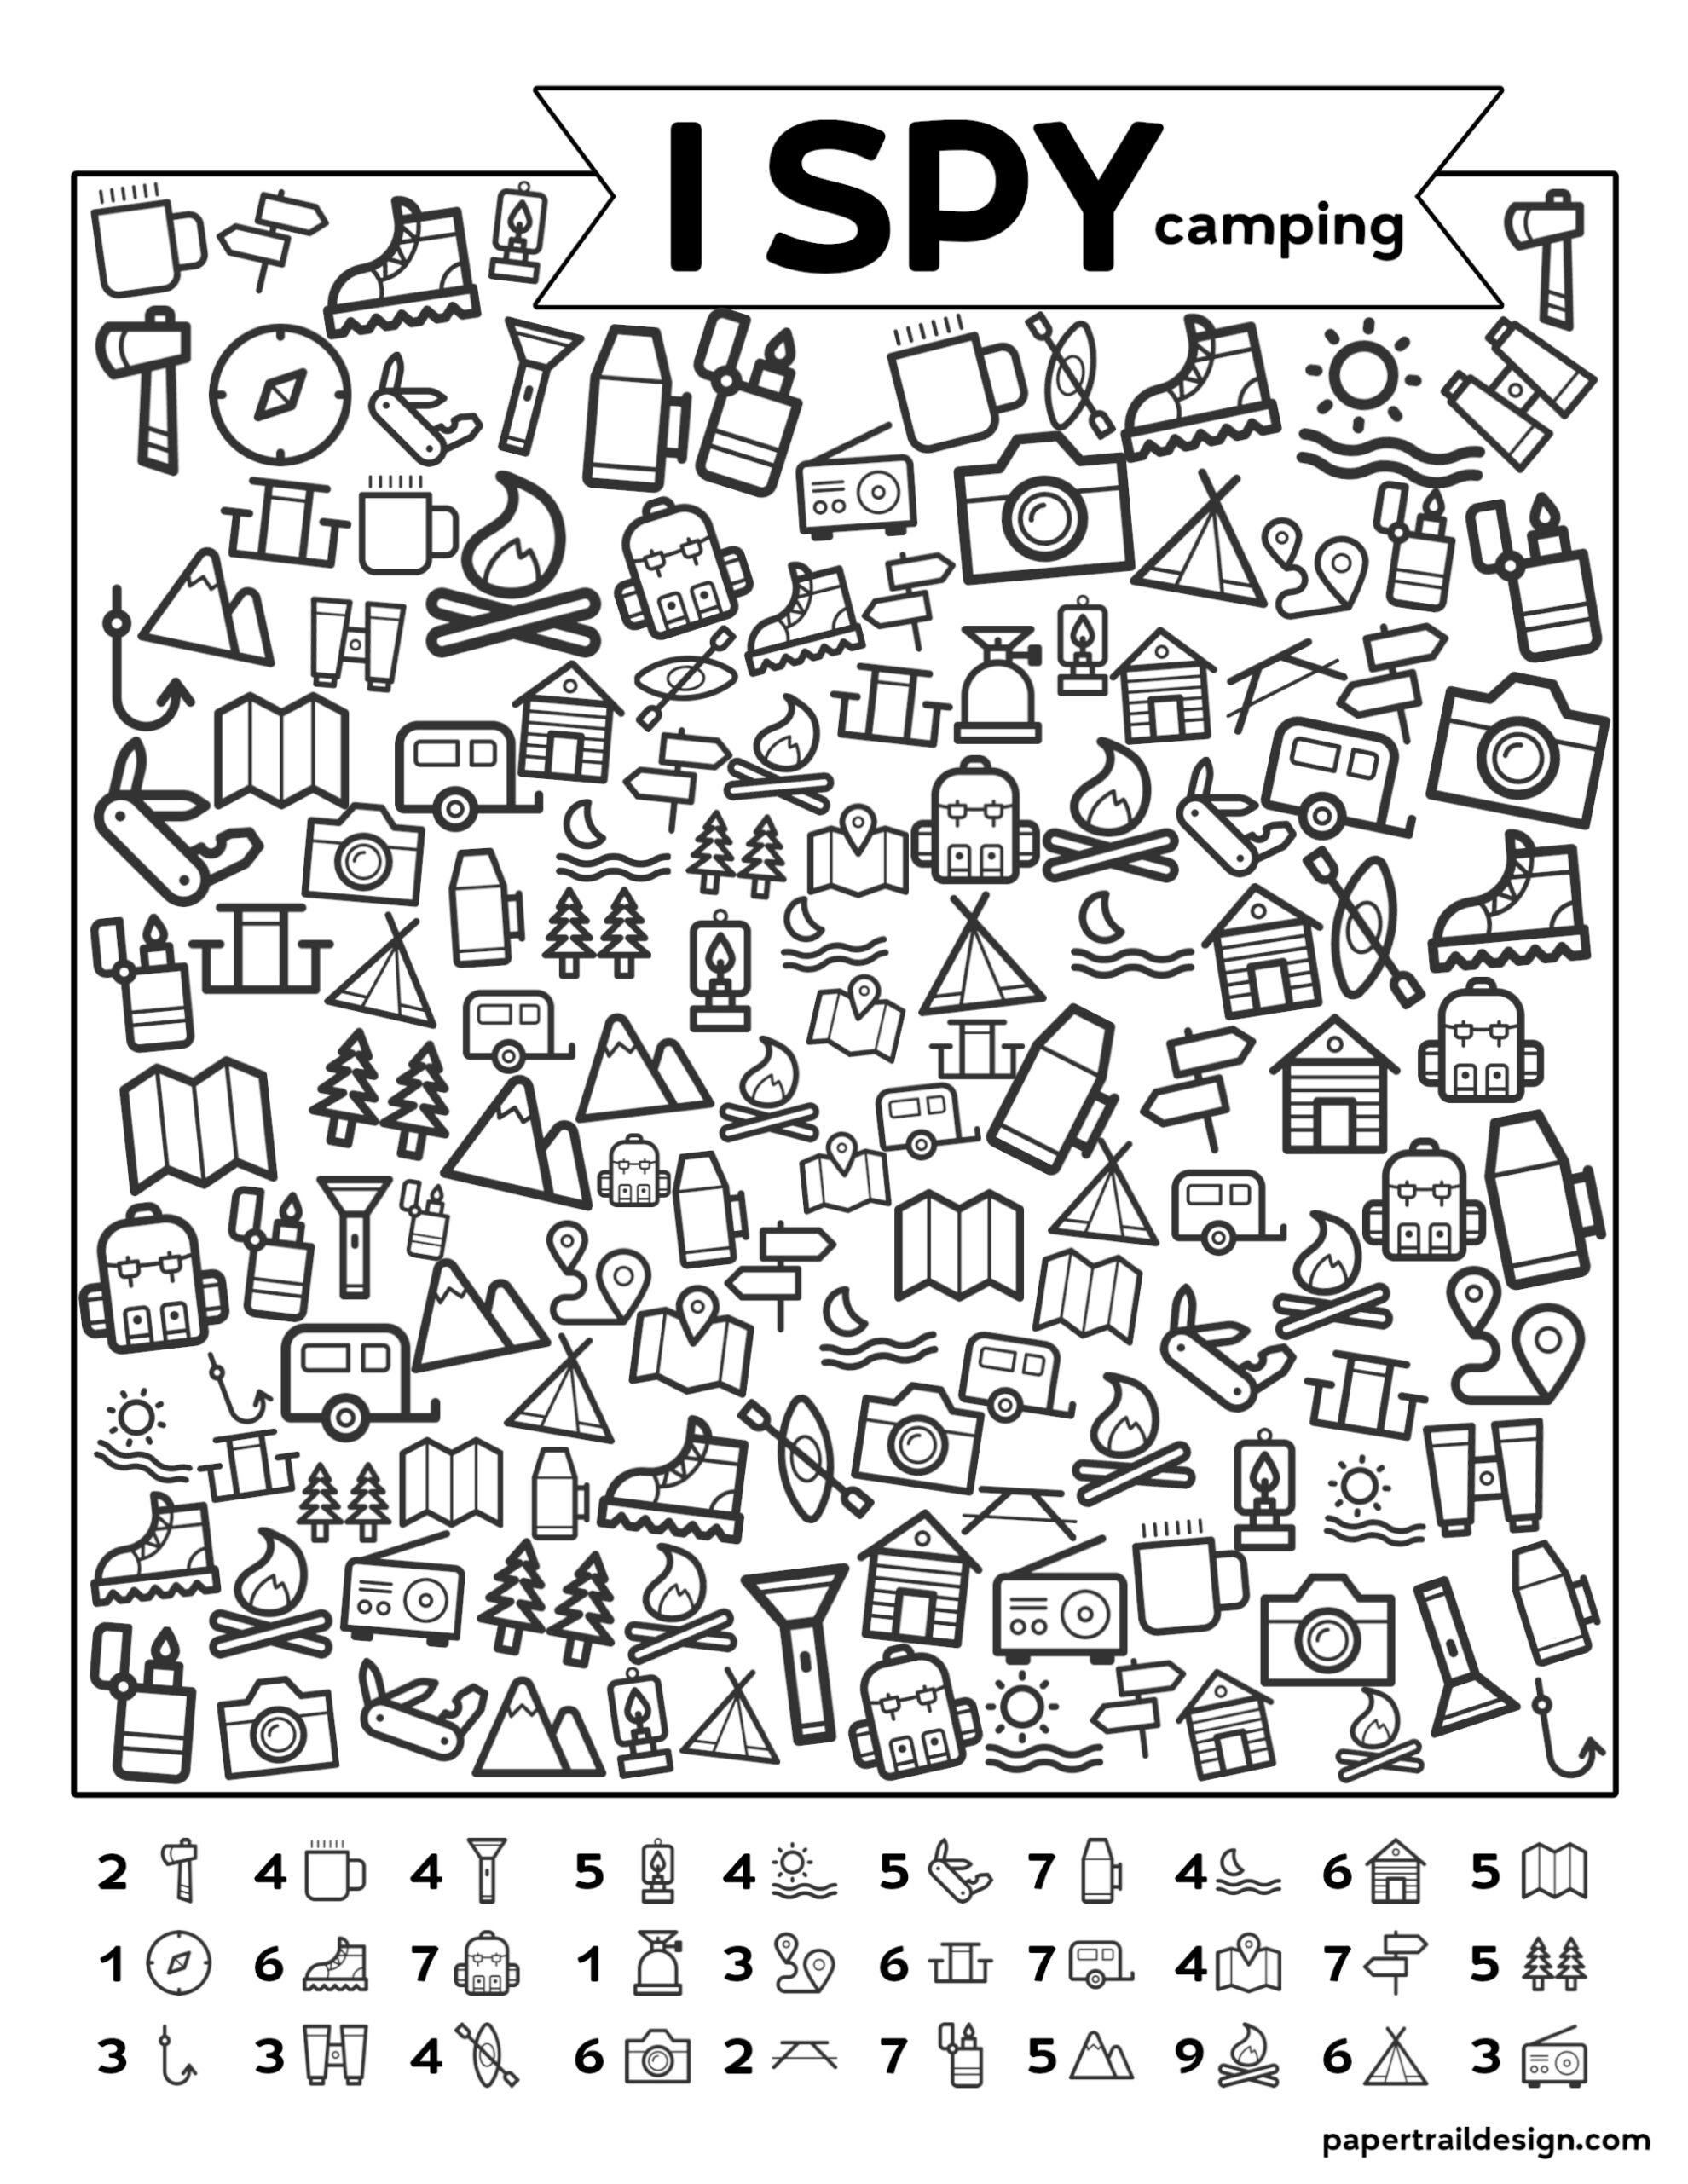 Canny image in i spy games printable